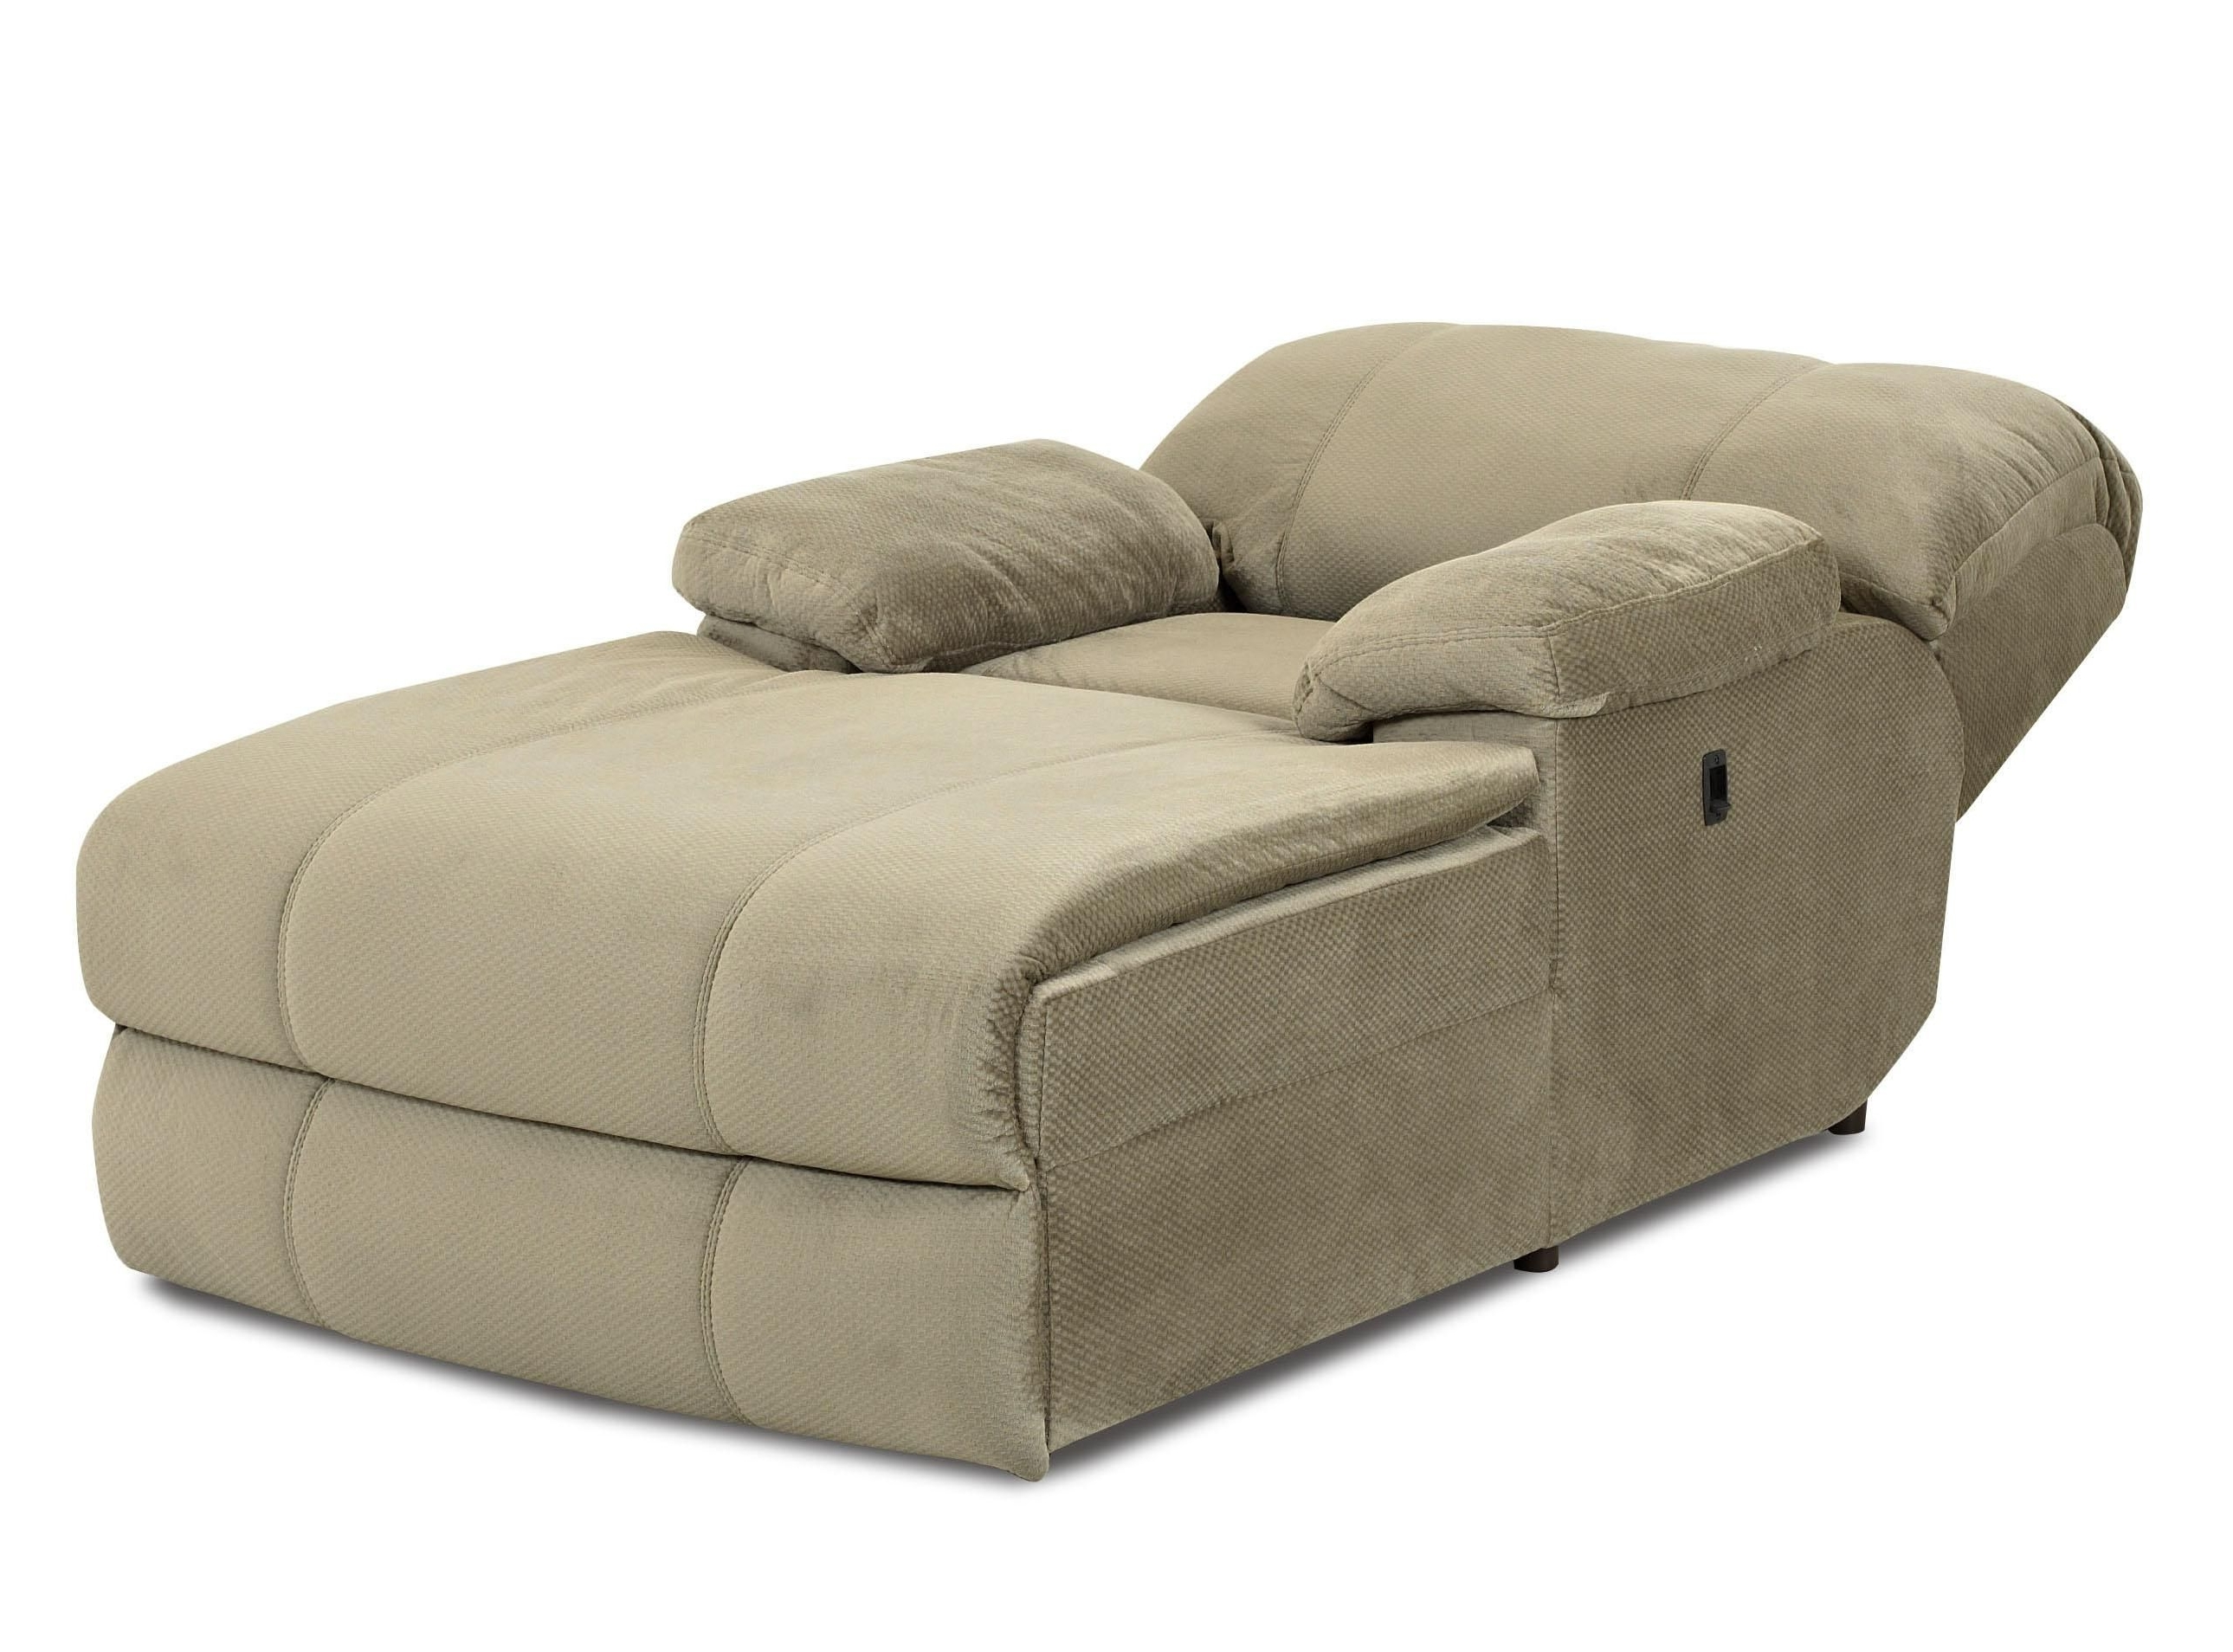 Kensington Reclining Chaise inside Oversized Indoor Chaise Lounges